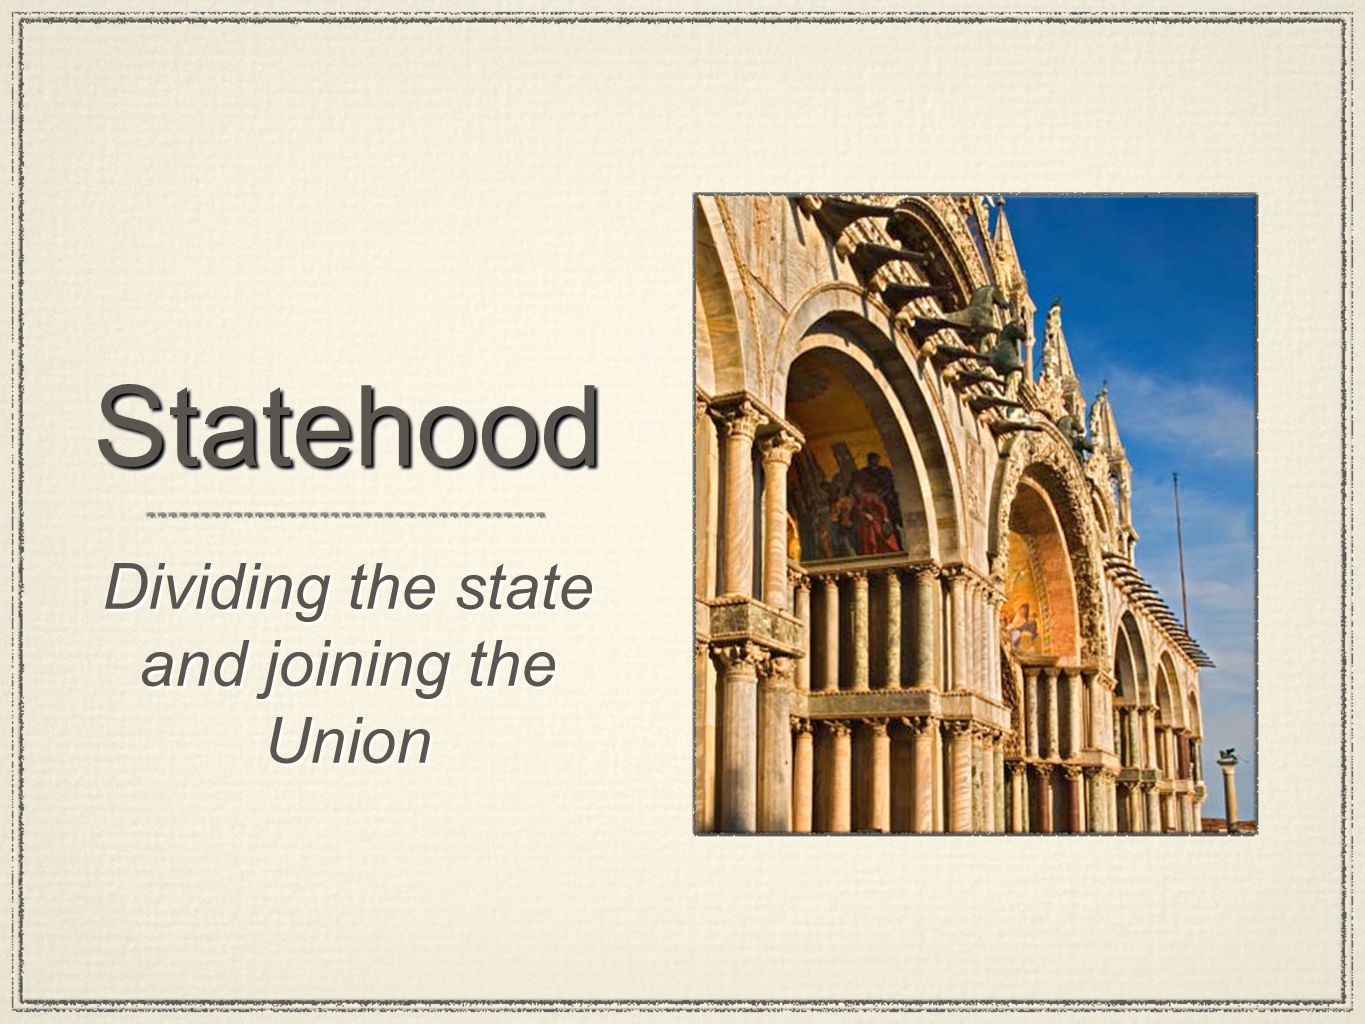 Dividing the state and joining the Union